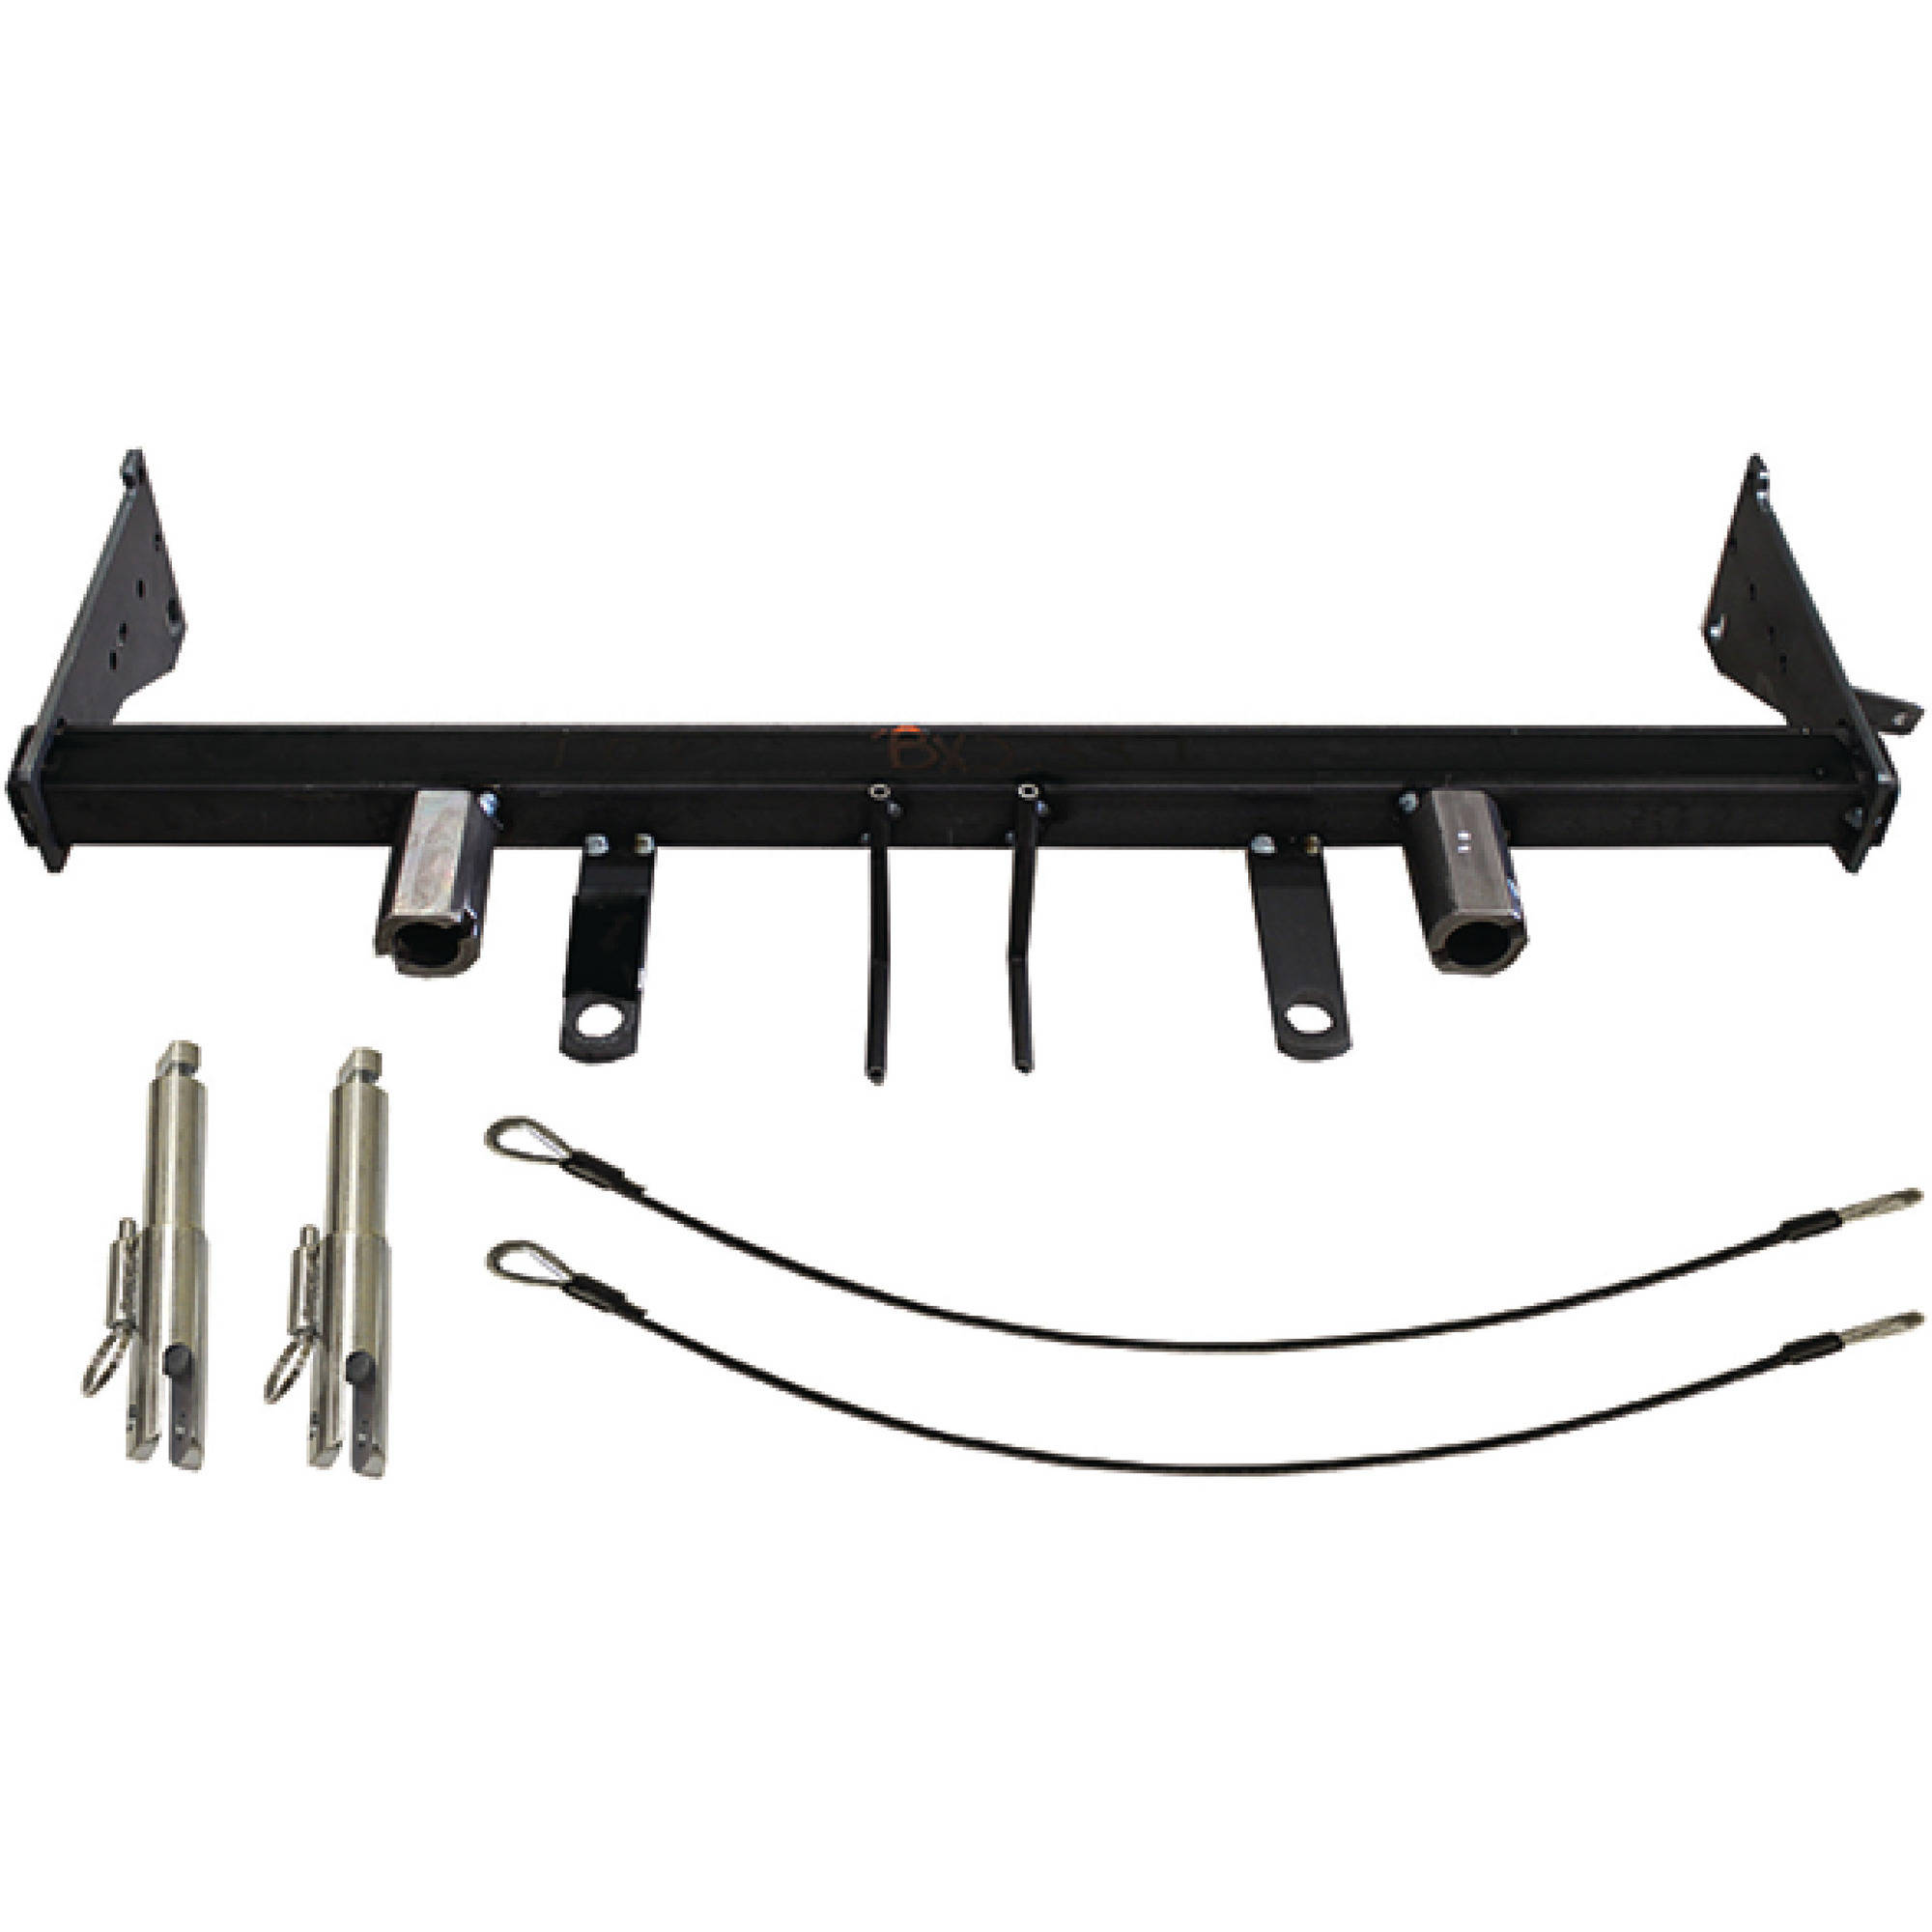 Blue Ox BX1655 Removable Tab RV Tow Baseplates for 2004-2005 Chevy Malibu (Includes Maxx) by Blue Ox